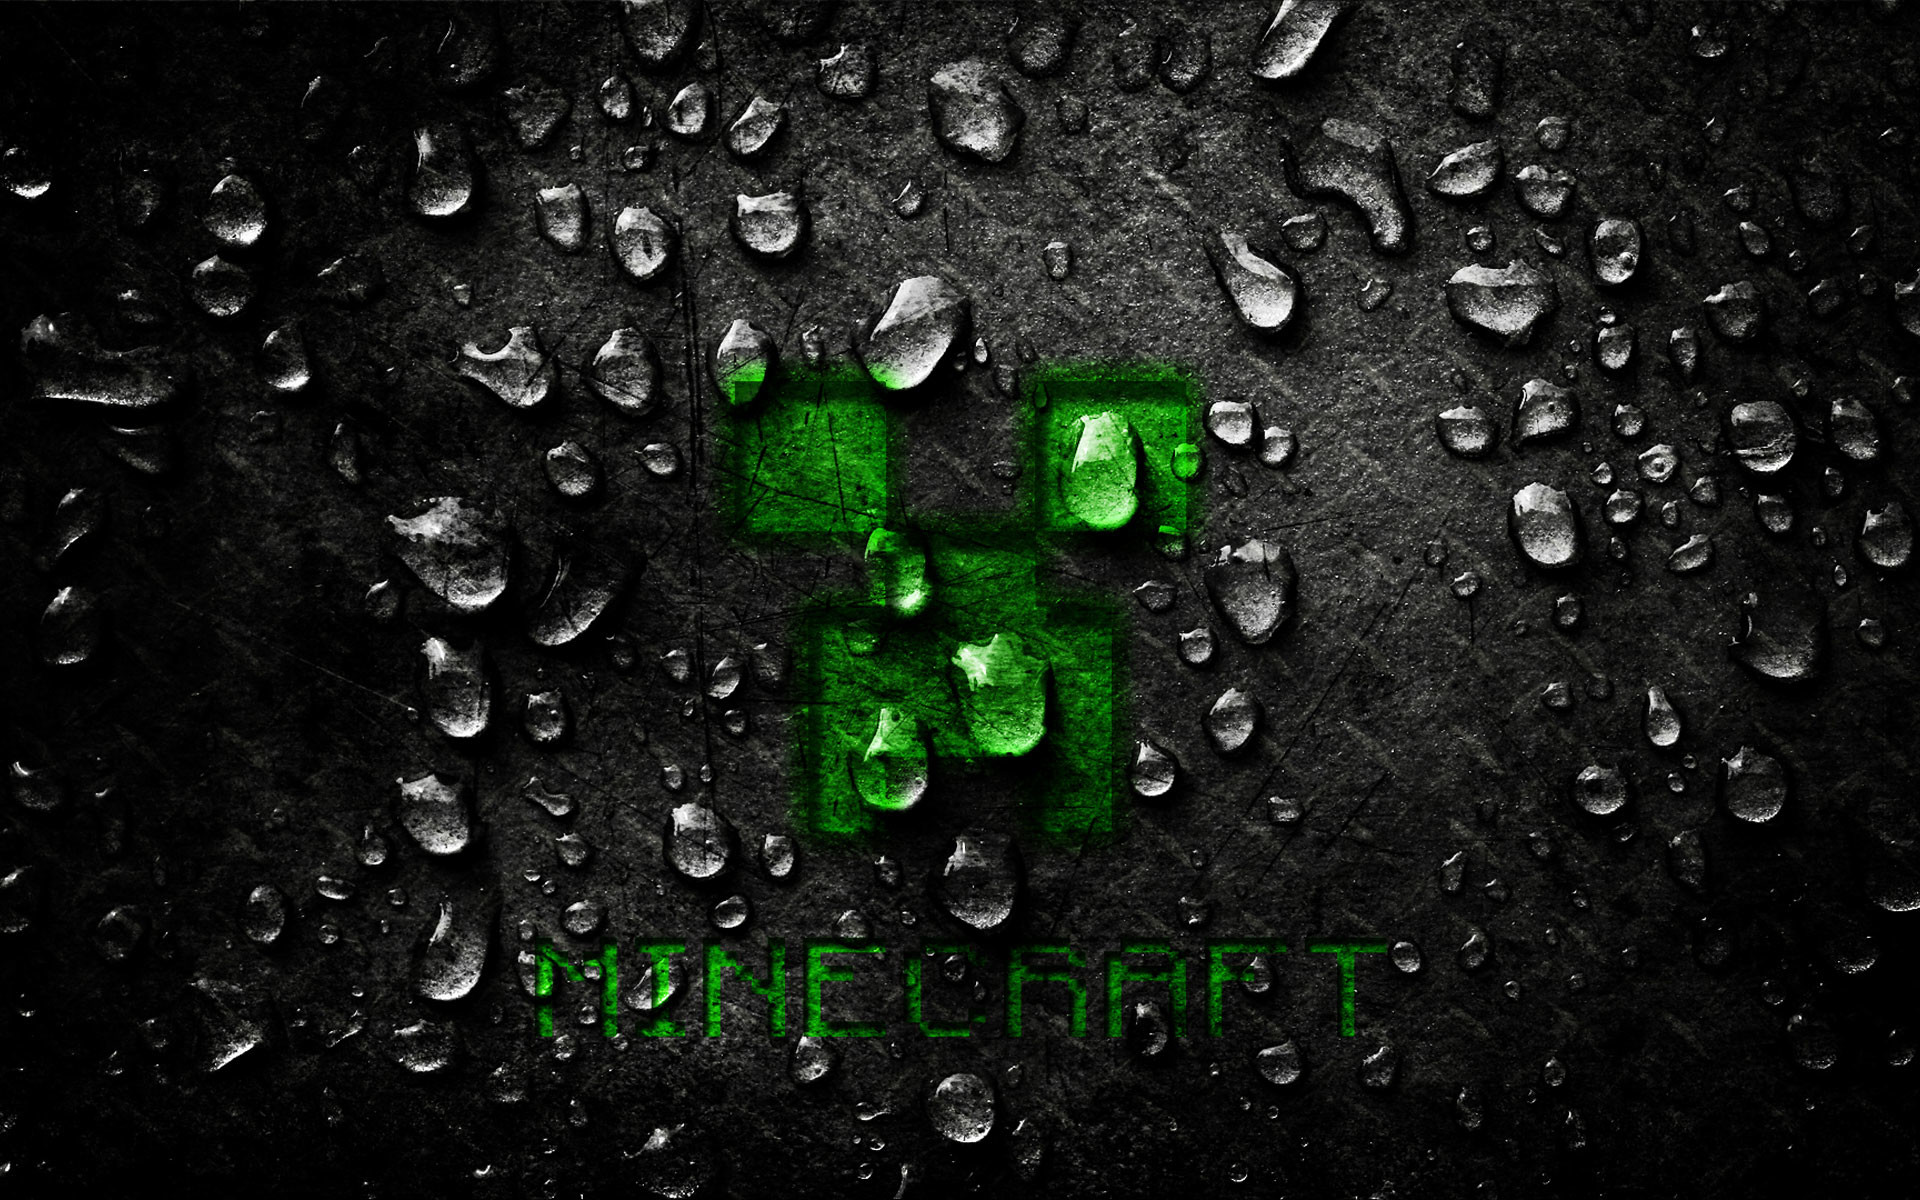 HD Wallpapers Of Minecraft Images - Minecraft computerspiele